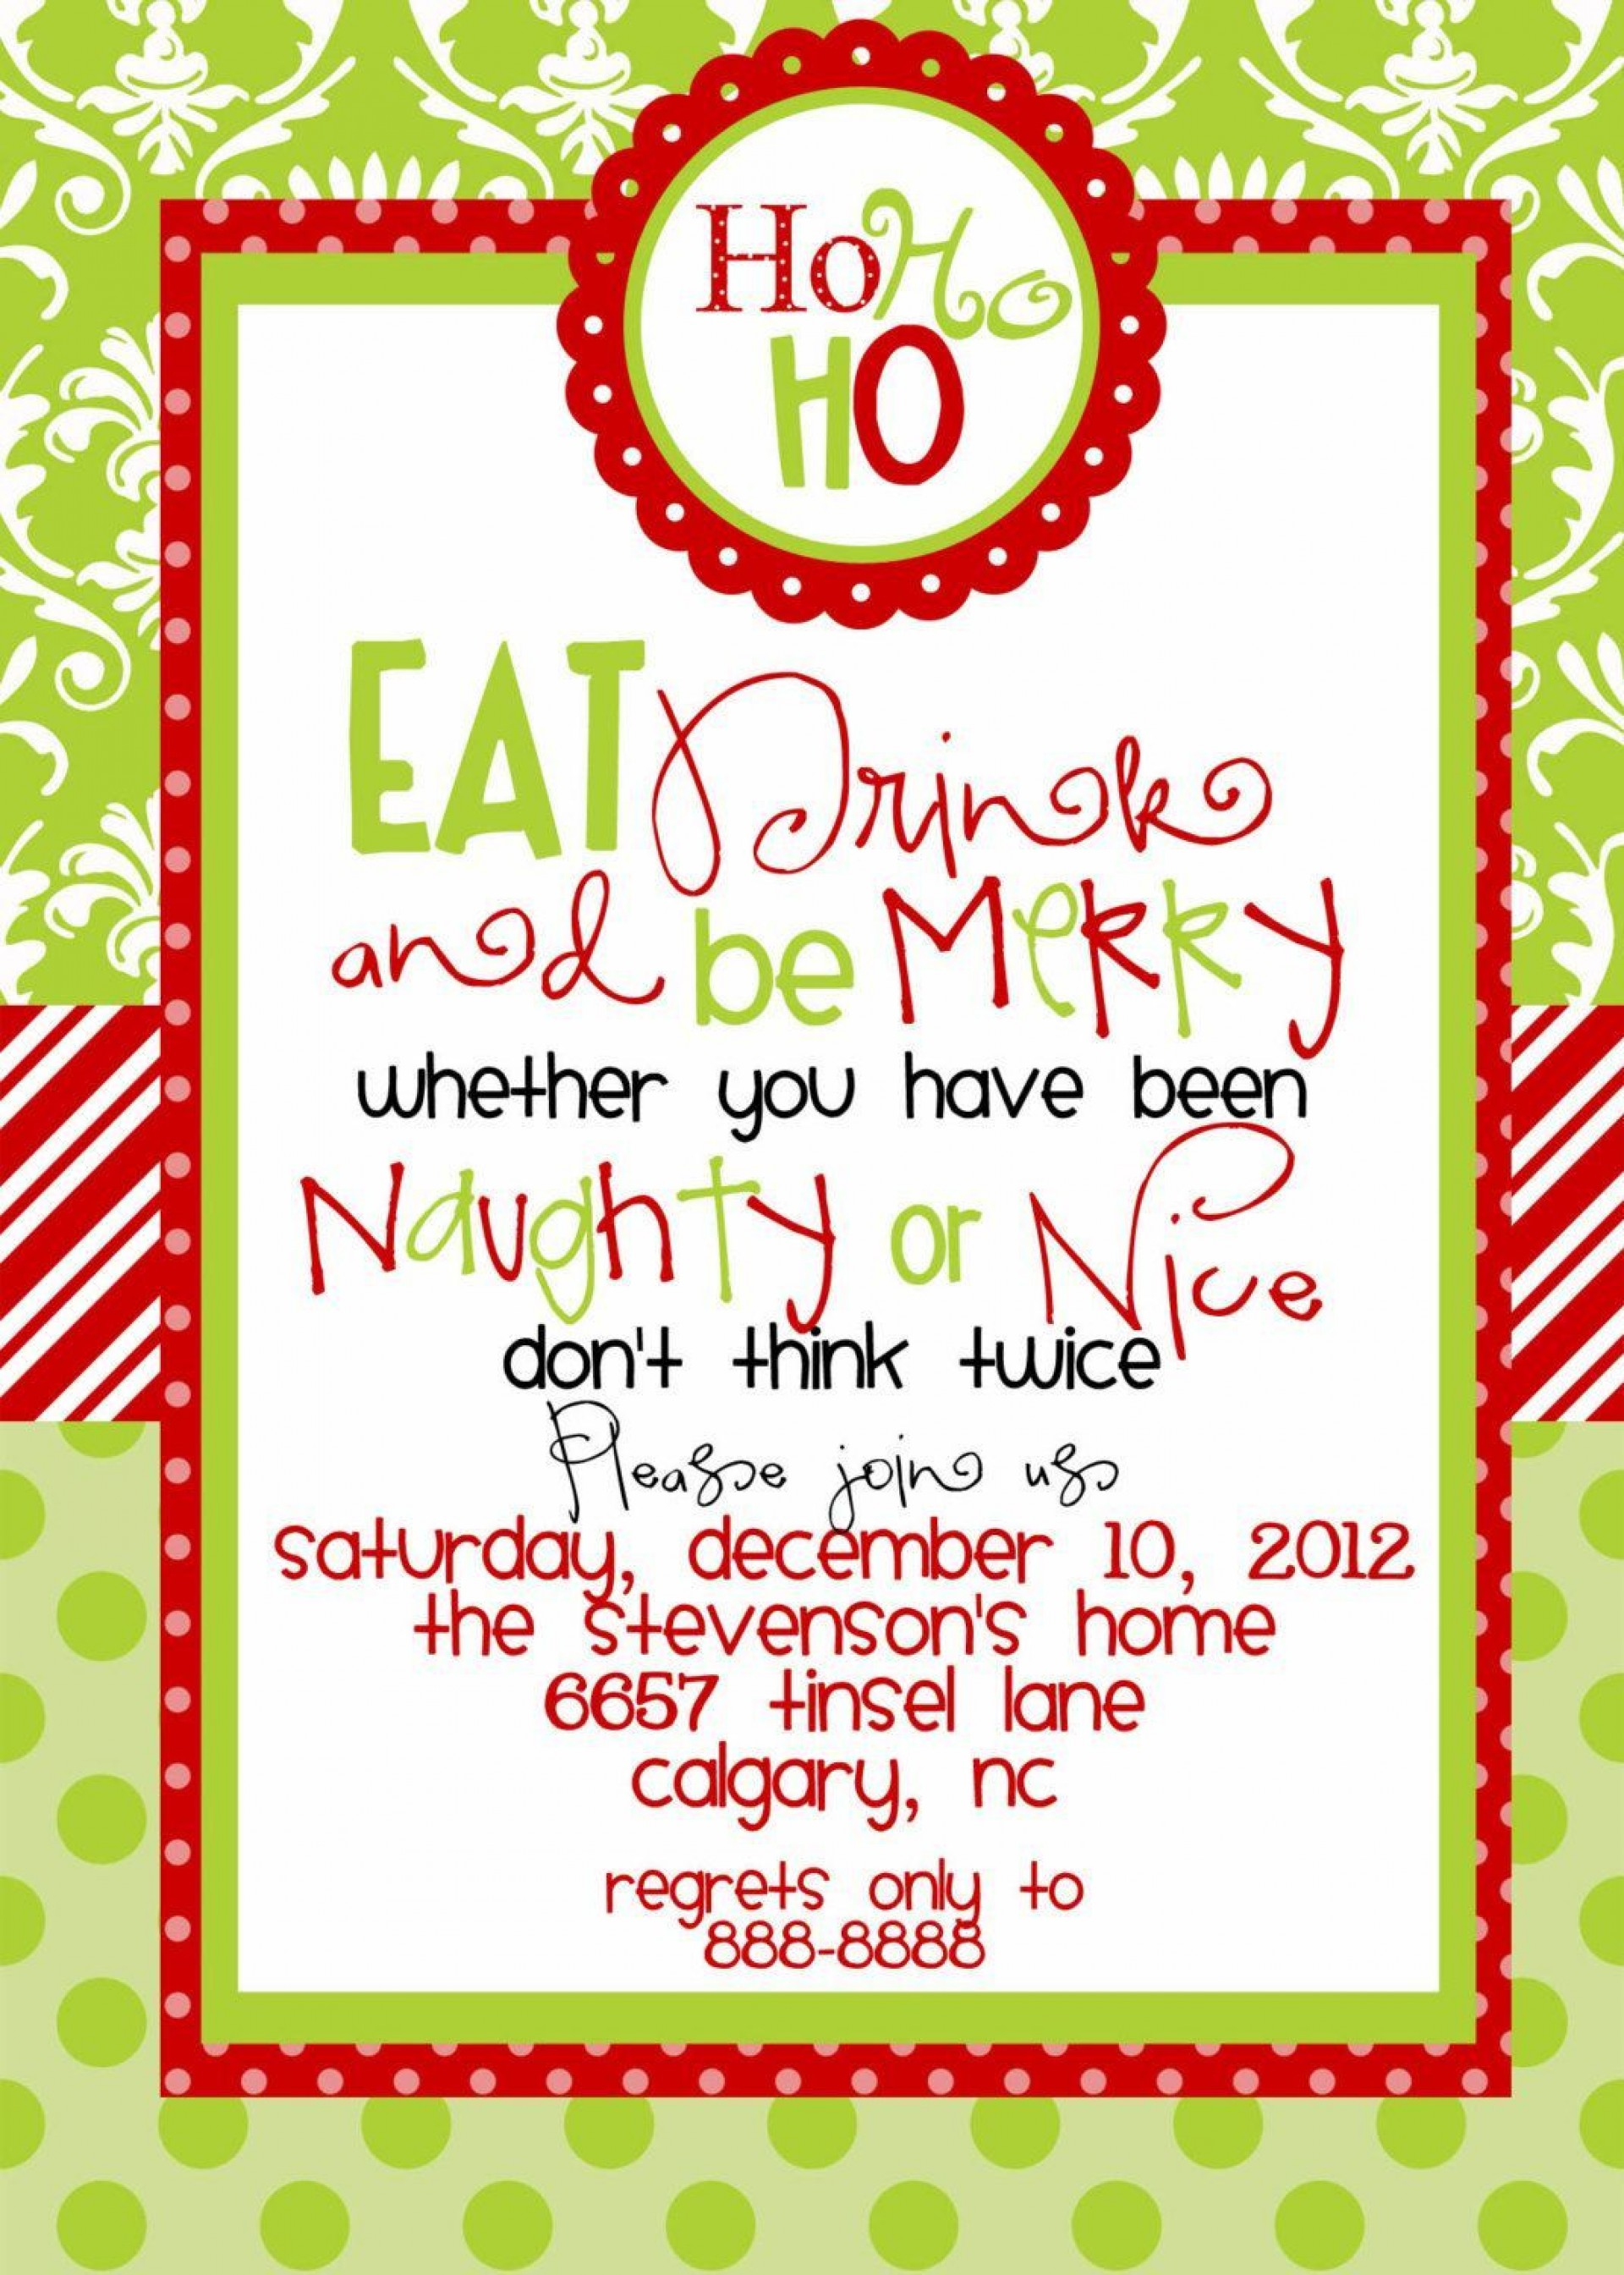 002 Frightening Party Invite Template Free Idea  Ugly Sweater Invitation Word Christma Printable Swimming Uk1920